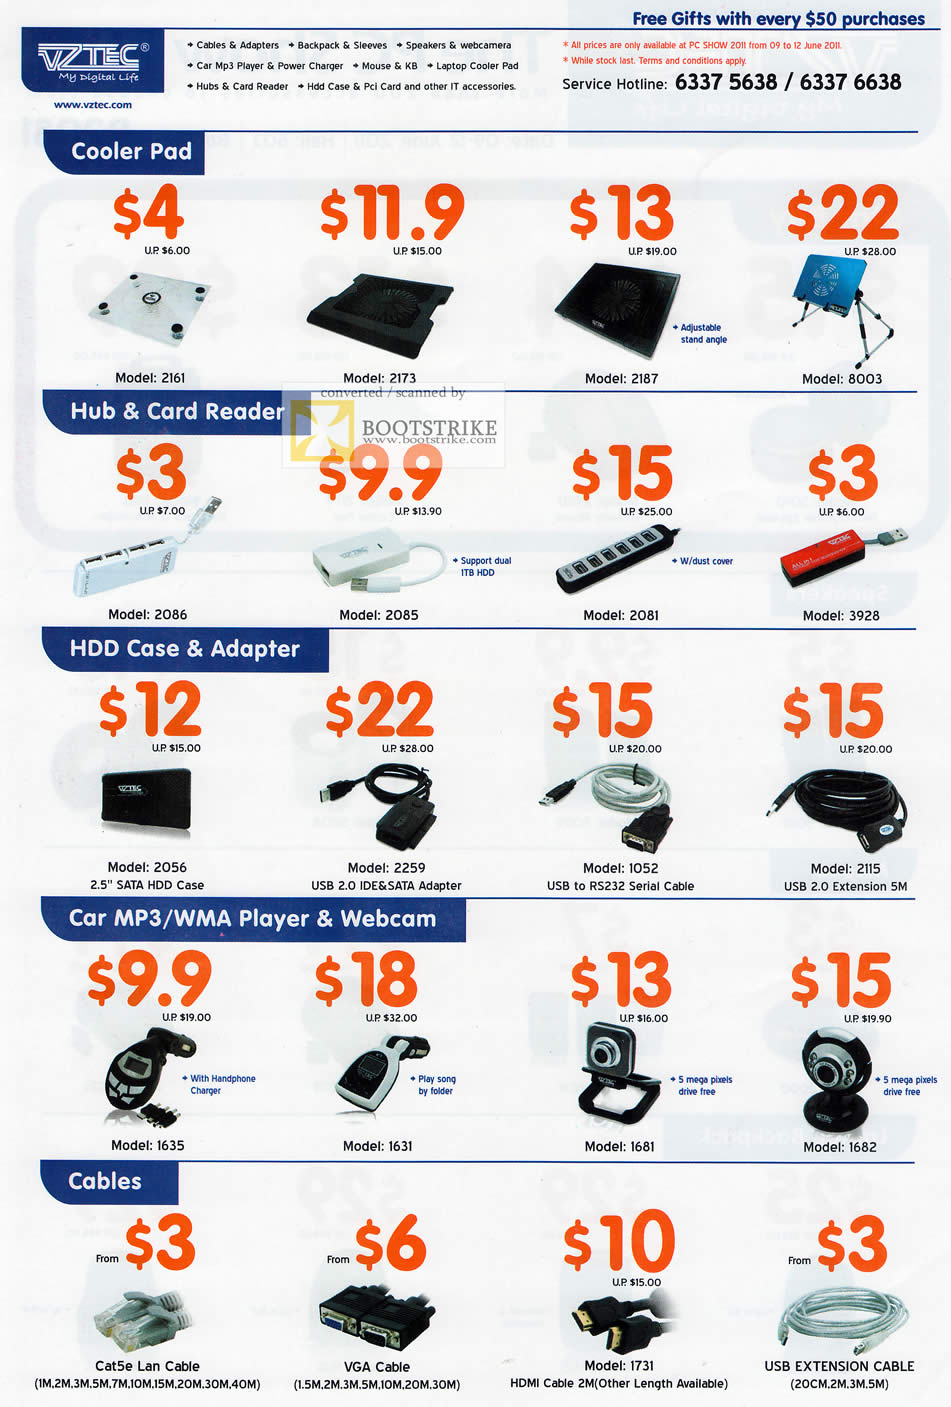 PC Show 2011 price list image brochure of Vztec Accessories Cooler Pad USB Hub Card Reader HDD Case Adapter IDE SATA Car MP3 Player WMA Webcam Cables VGA USB